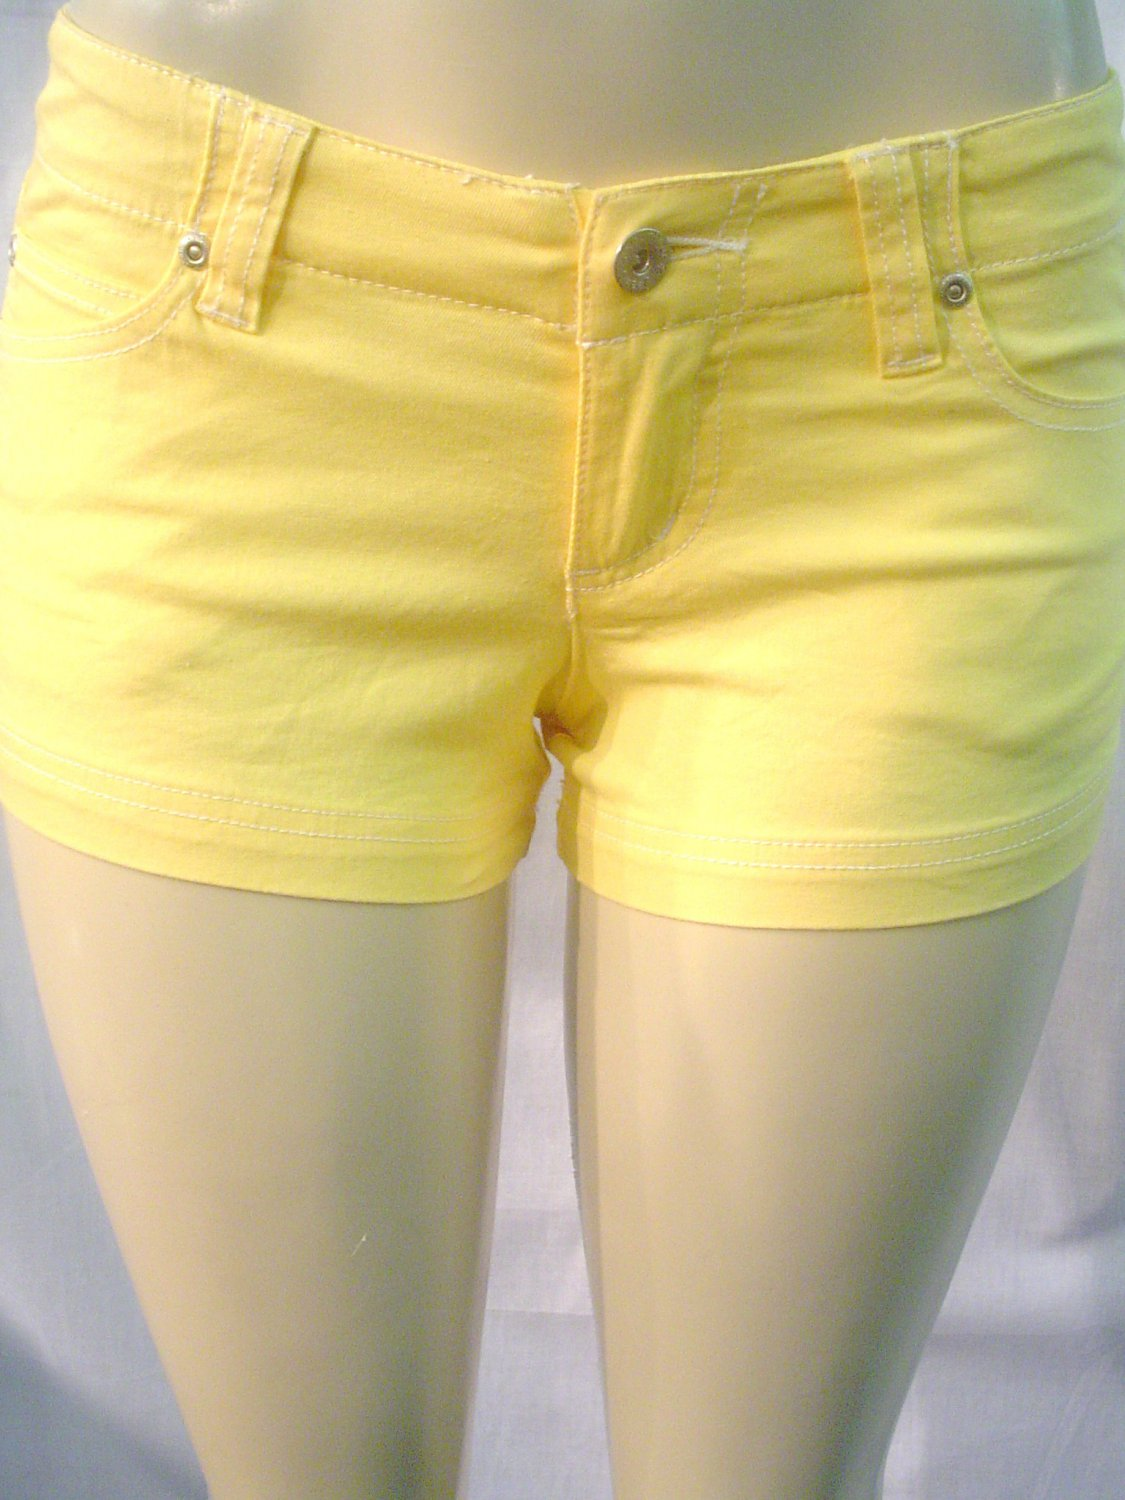 NEW ultra stretchy soft colored denim knit shorts, yelow  sz 9